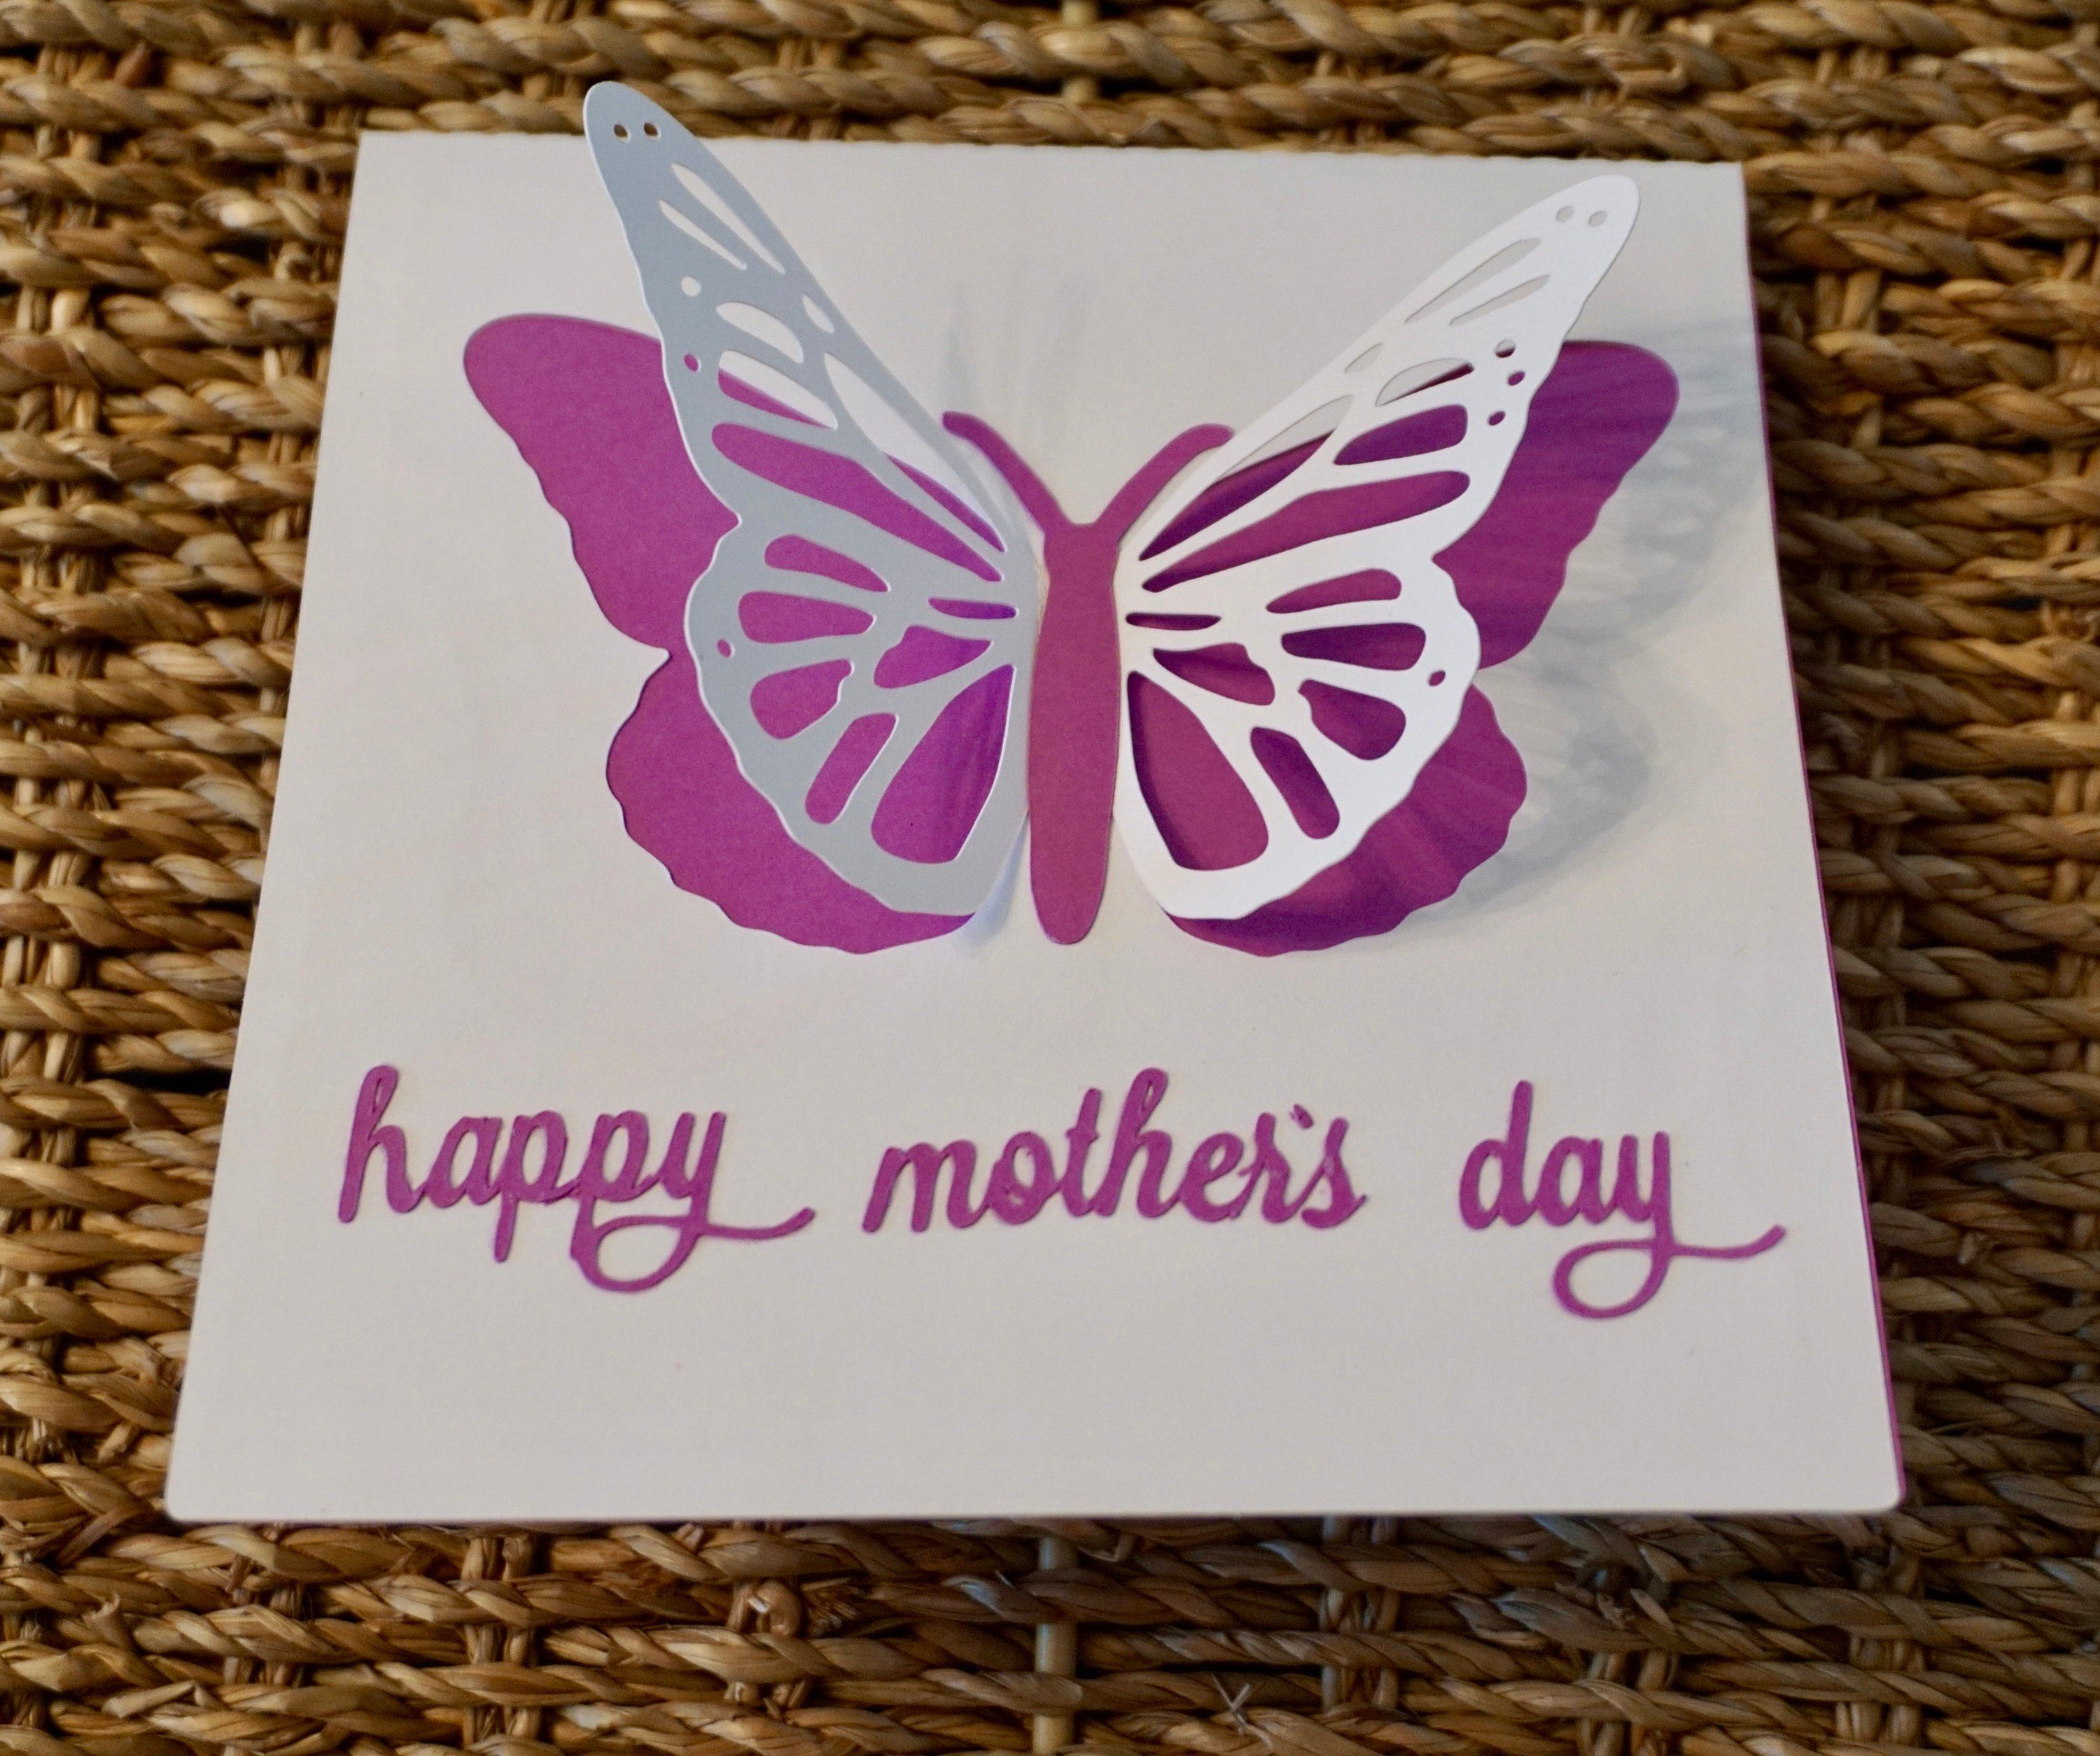 mother's day cards greeting cards butterfly cards fun